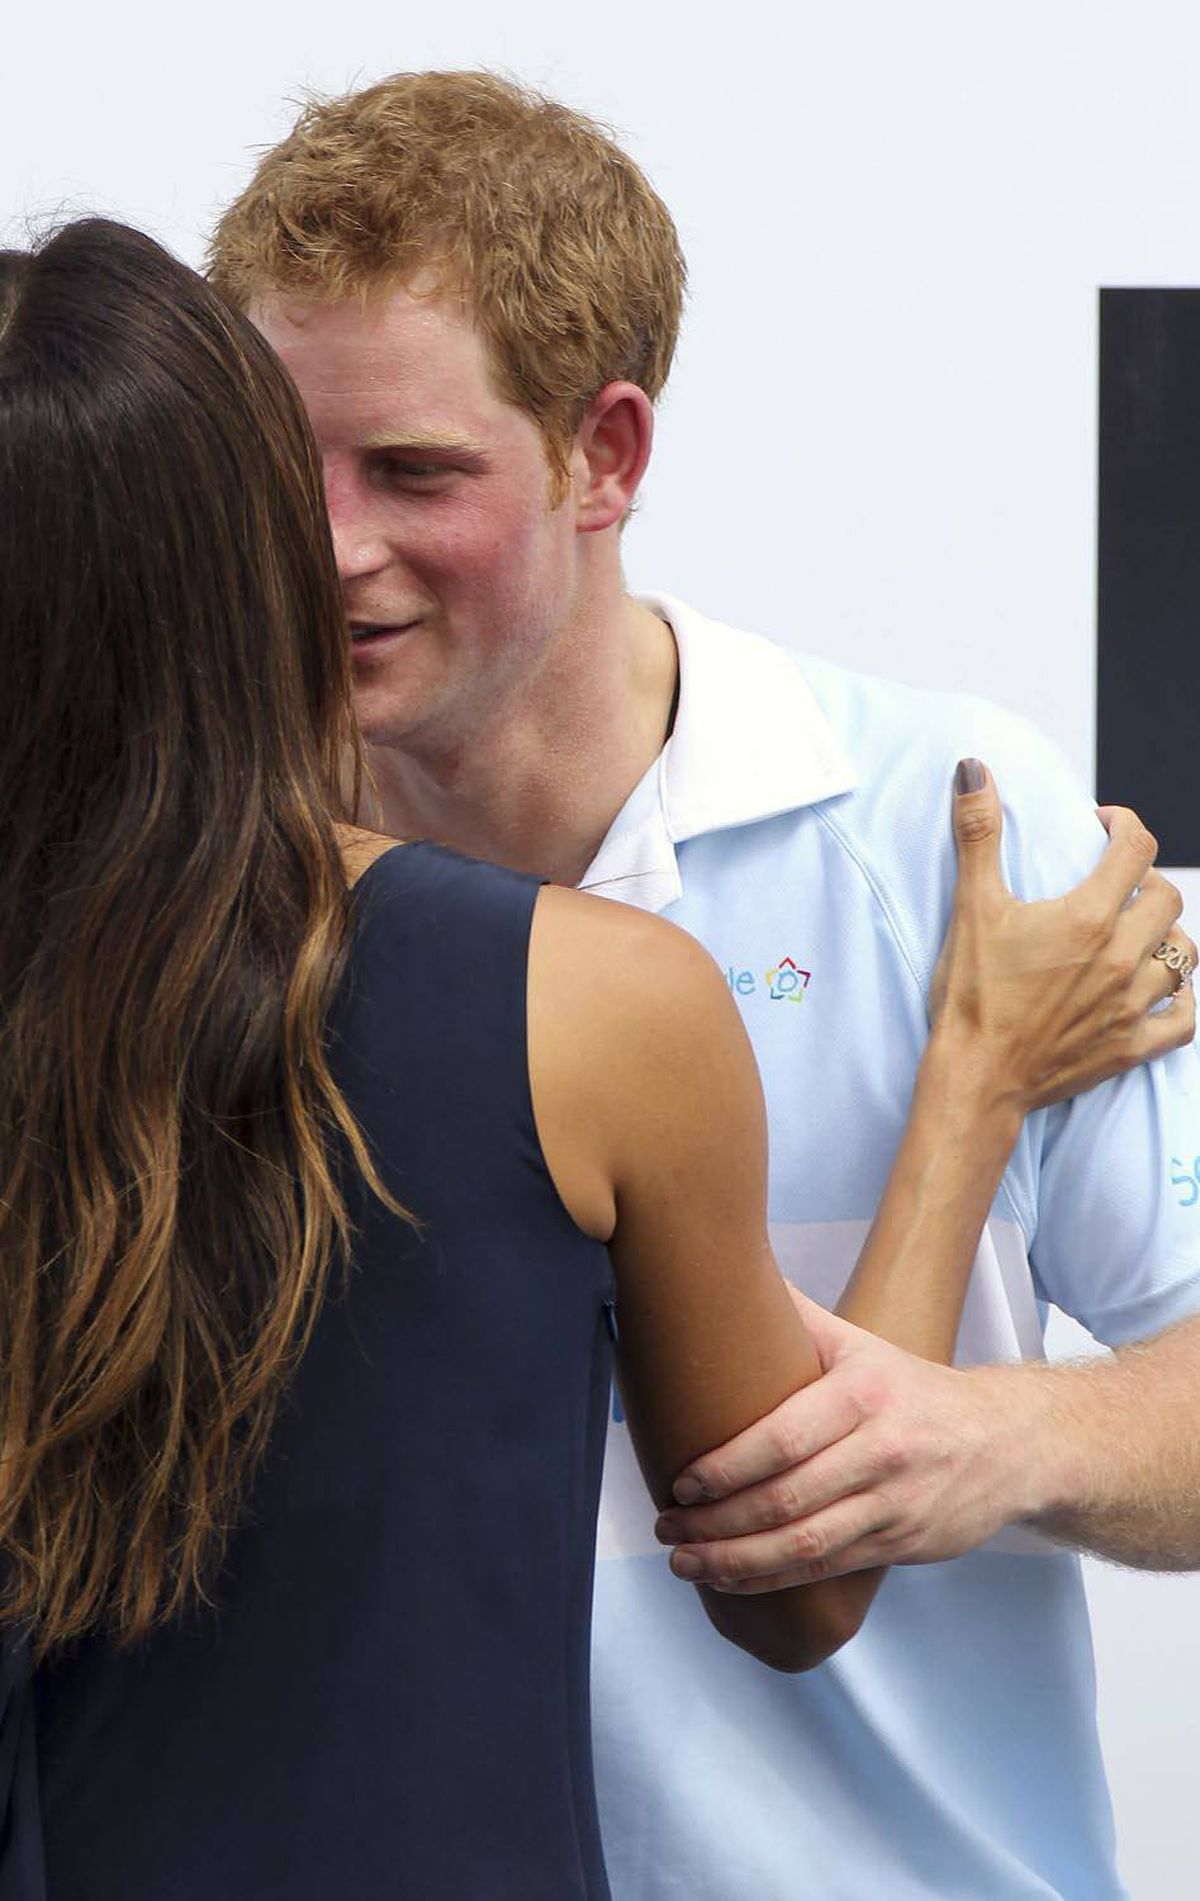 LADIES MAN Britain's Prince Harry speaks to Brazilian model Fernanda Motta after playing a polo match at a farm in Campinas, Brazil, March 11, 2012.